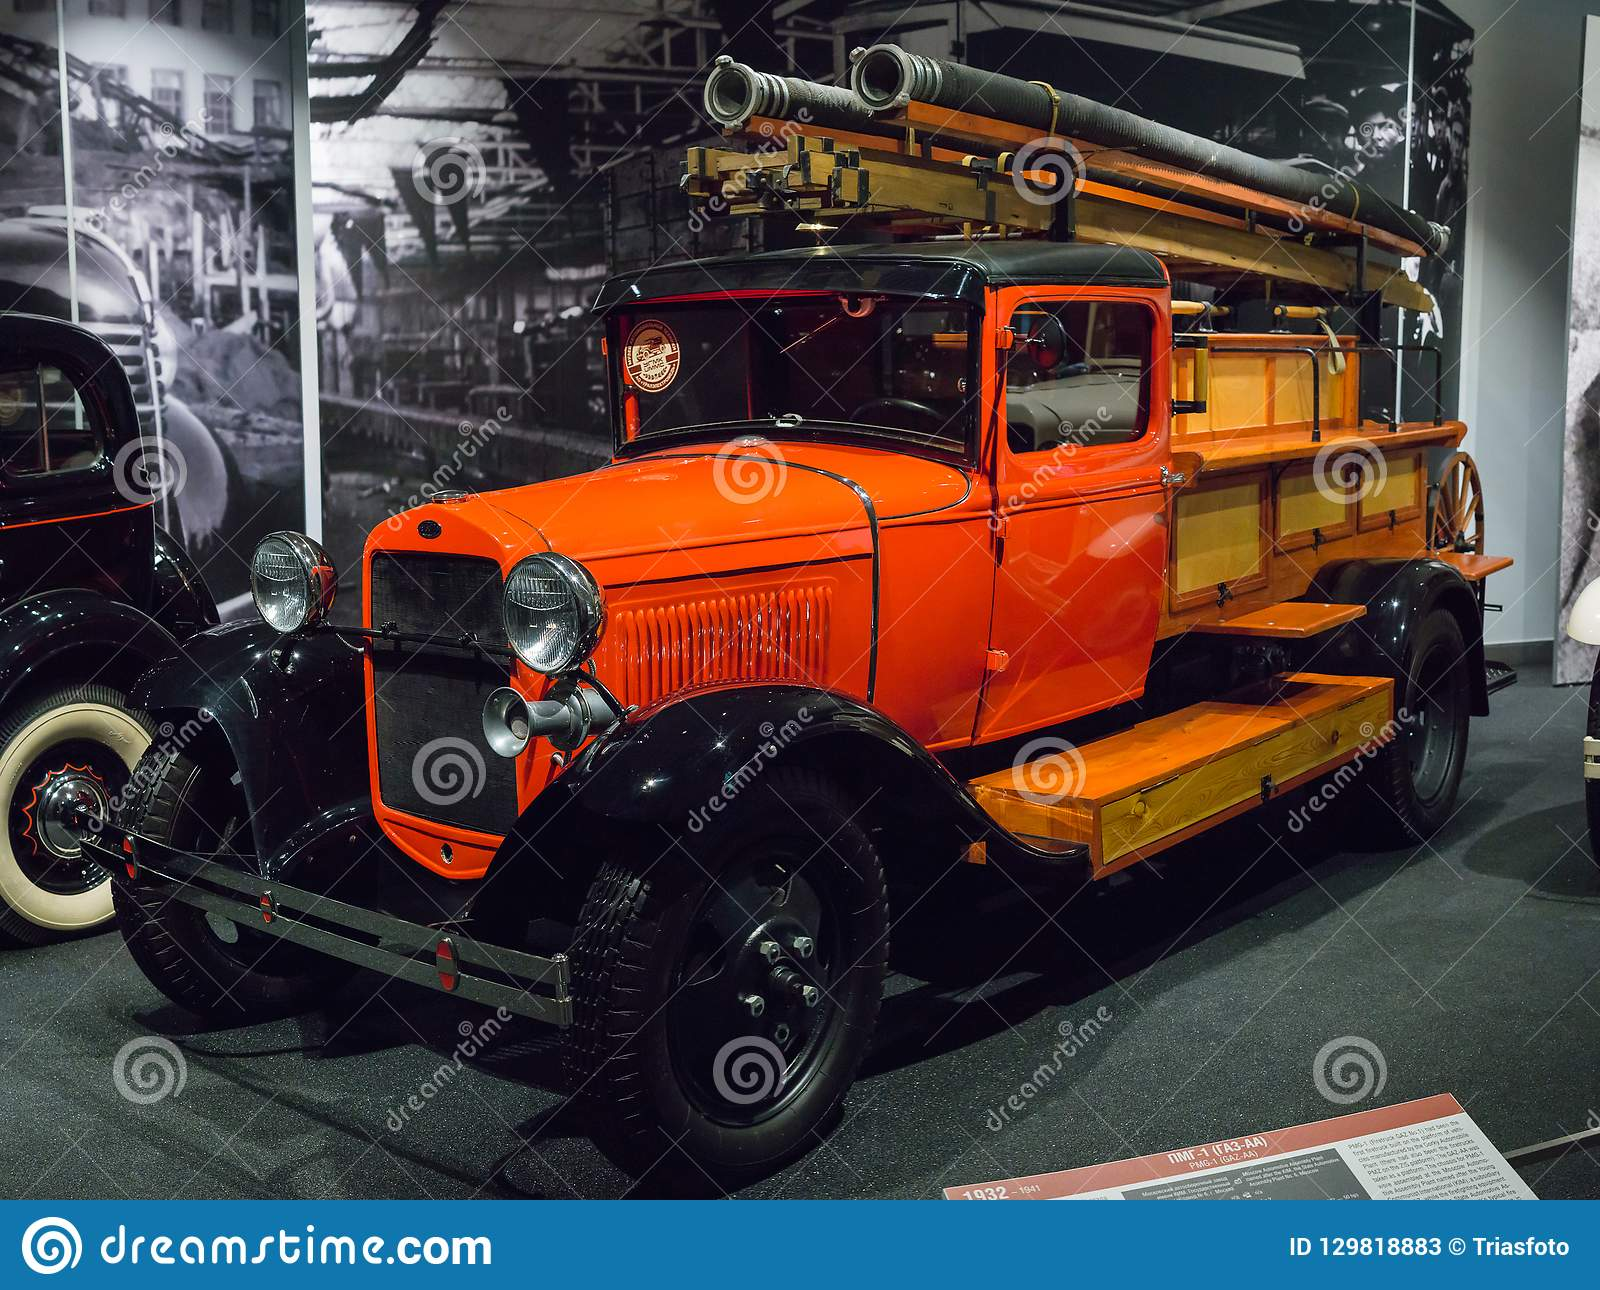 Automobile Engineering For Fire Retro Car Pmg 1 Gaz Aa In The Twentieth Century Automobile